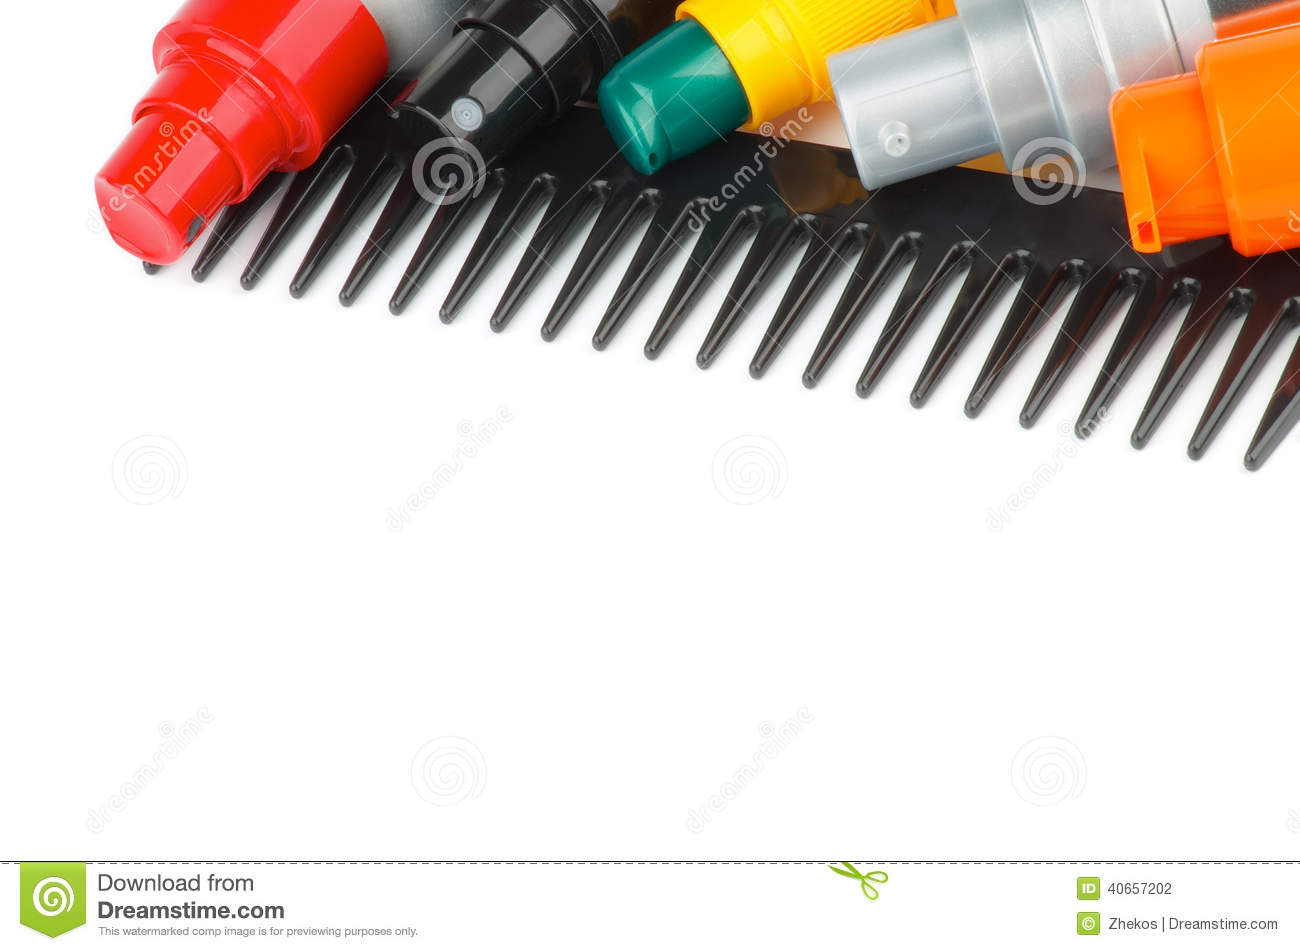 Comb And Hair Styling Products Stock Photo - Image: 40657202